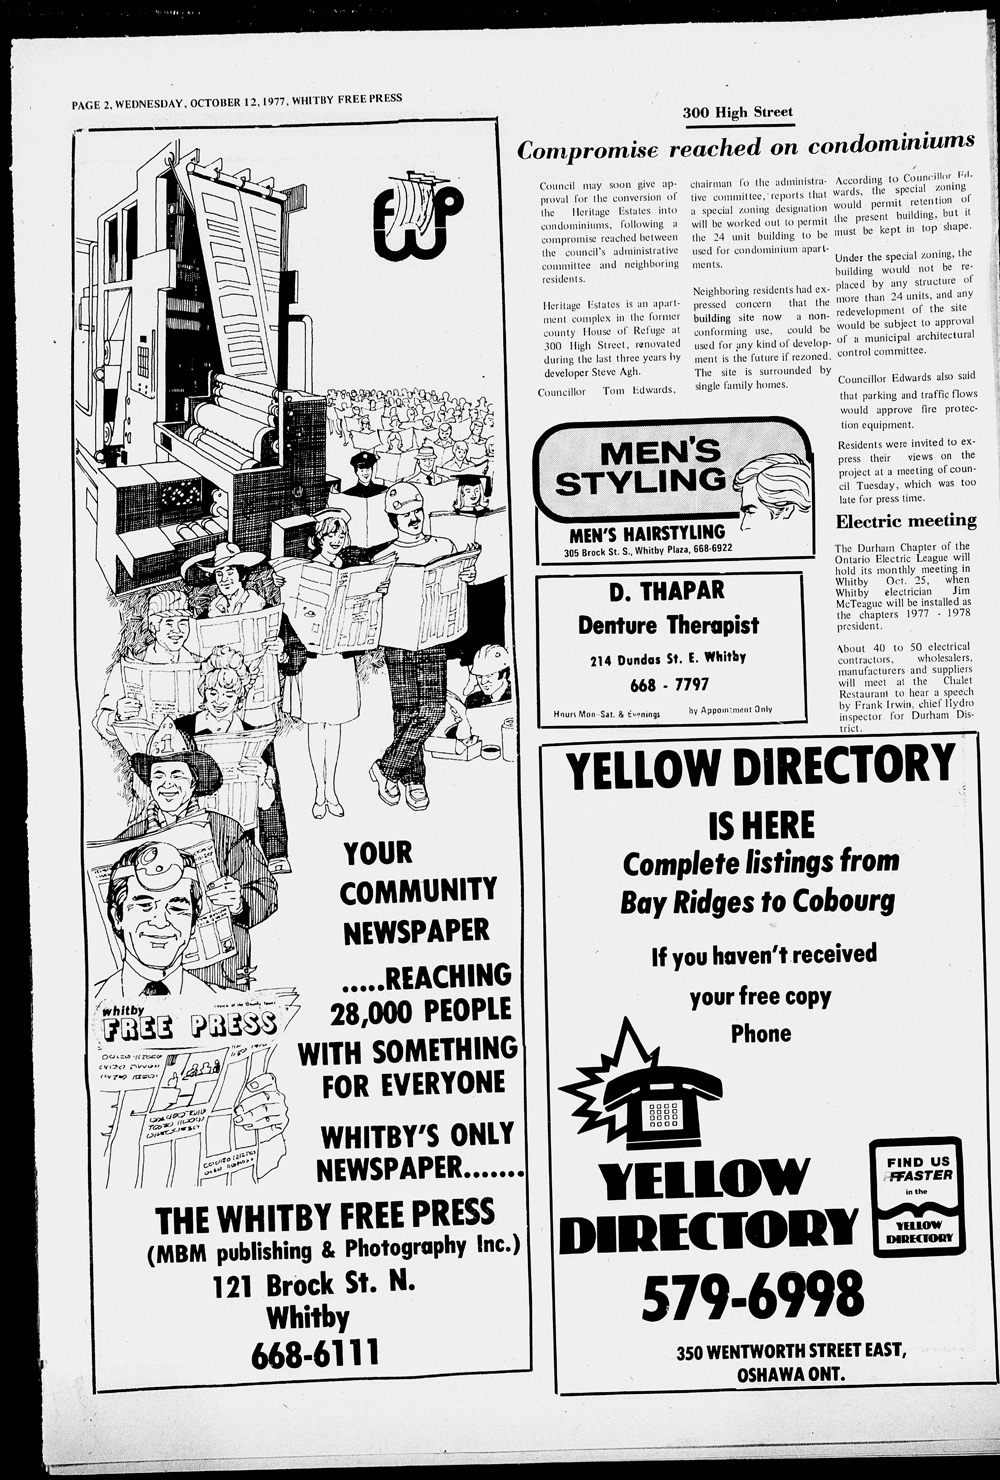 Whitby Free Press, 12 Oct 1977